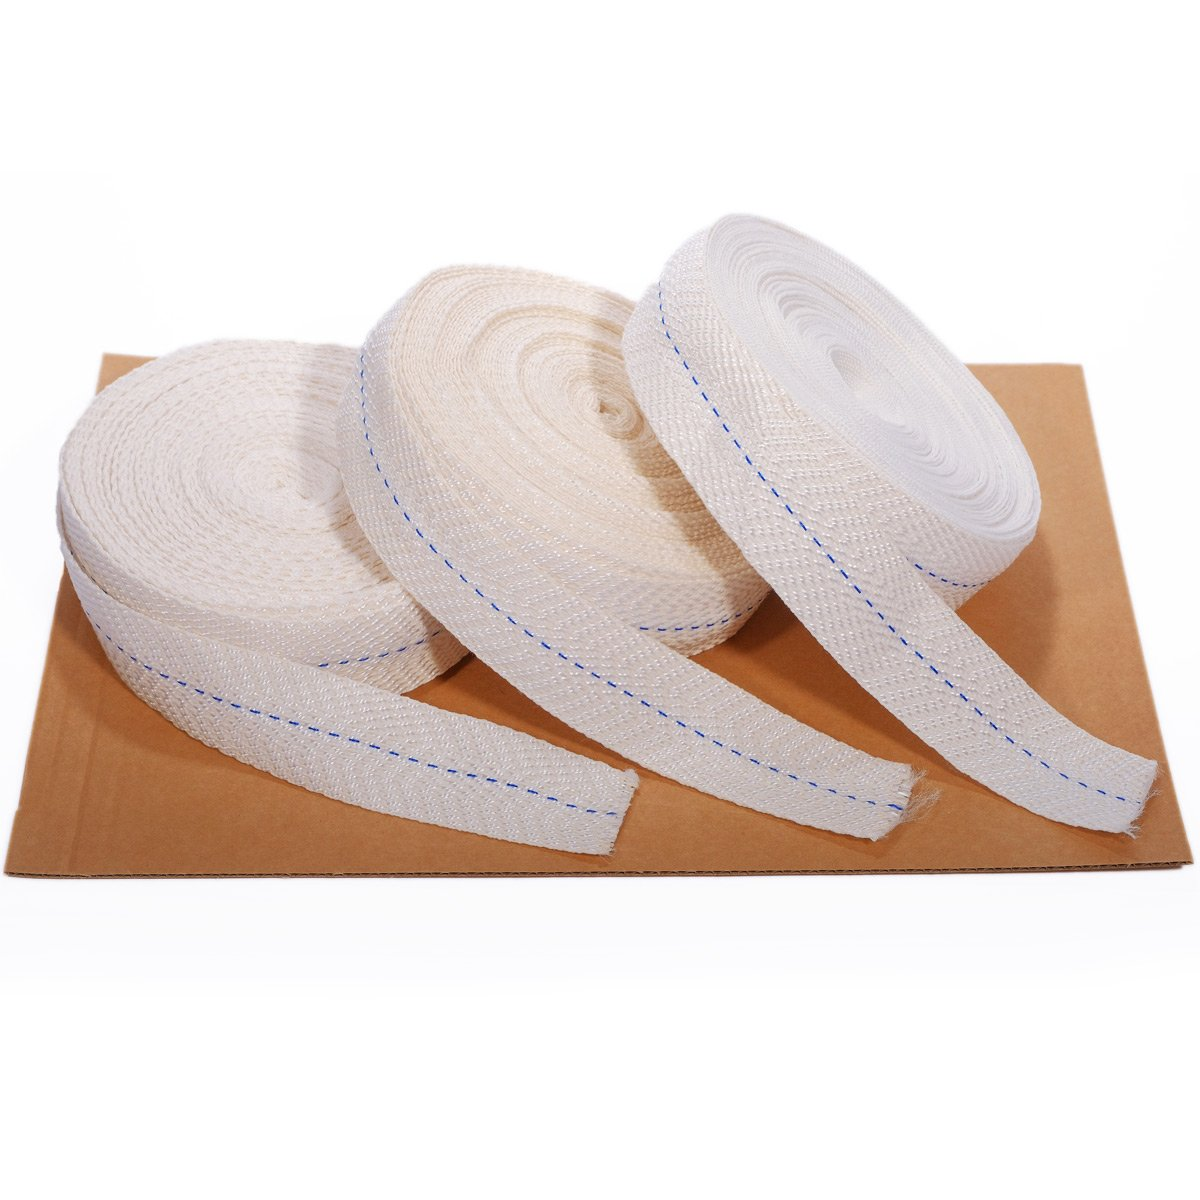 tie down 2 x webbing furniture removal van straps FREE Express Delivery lashing